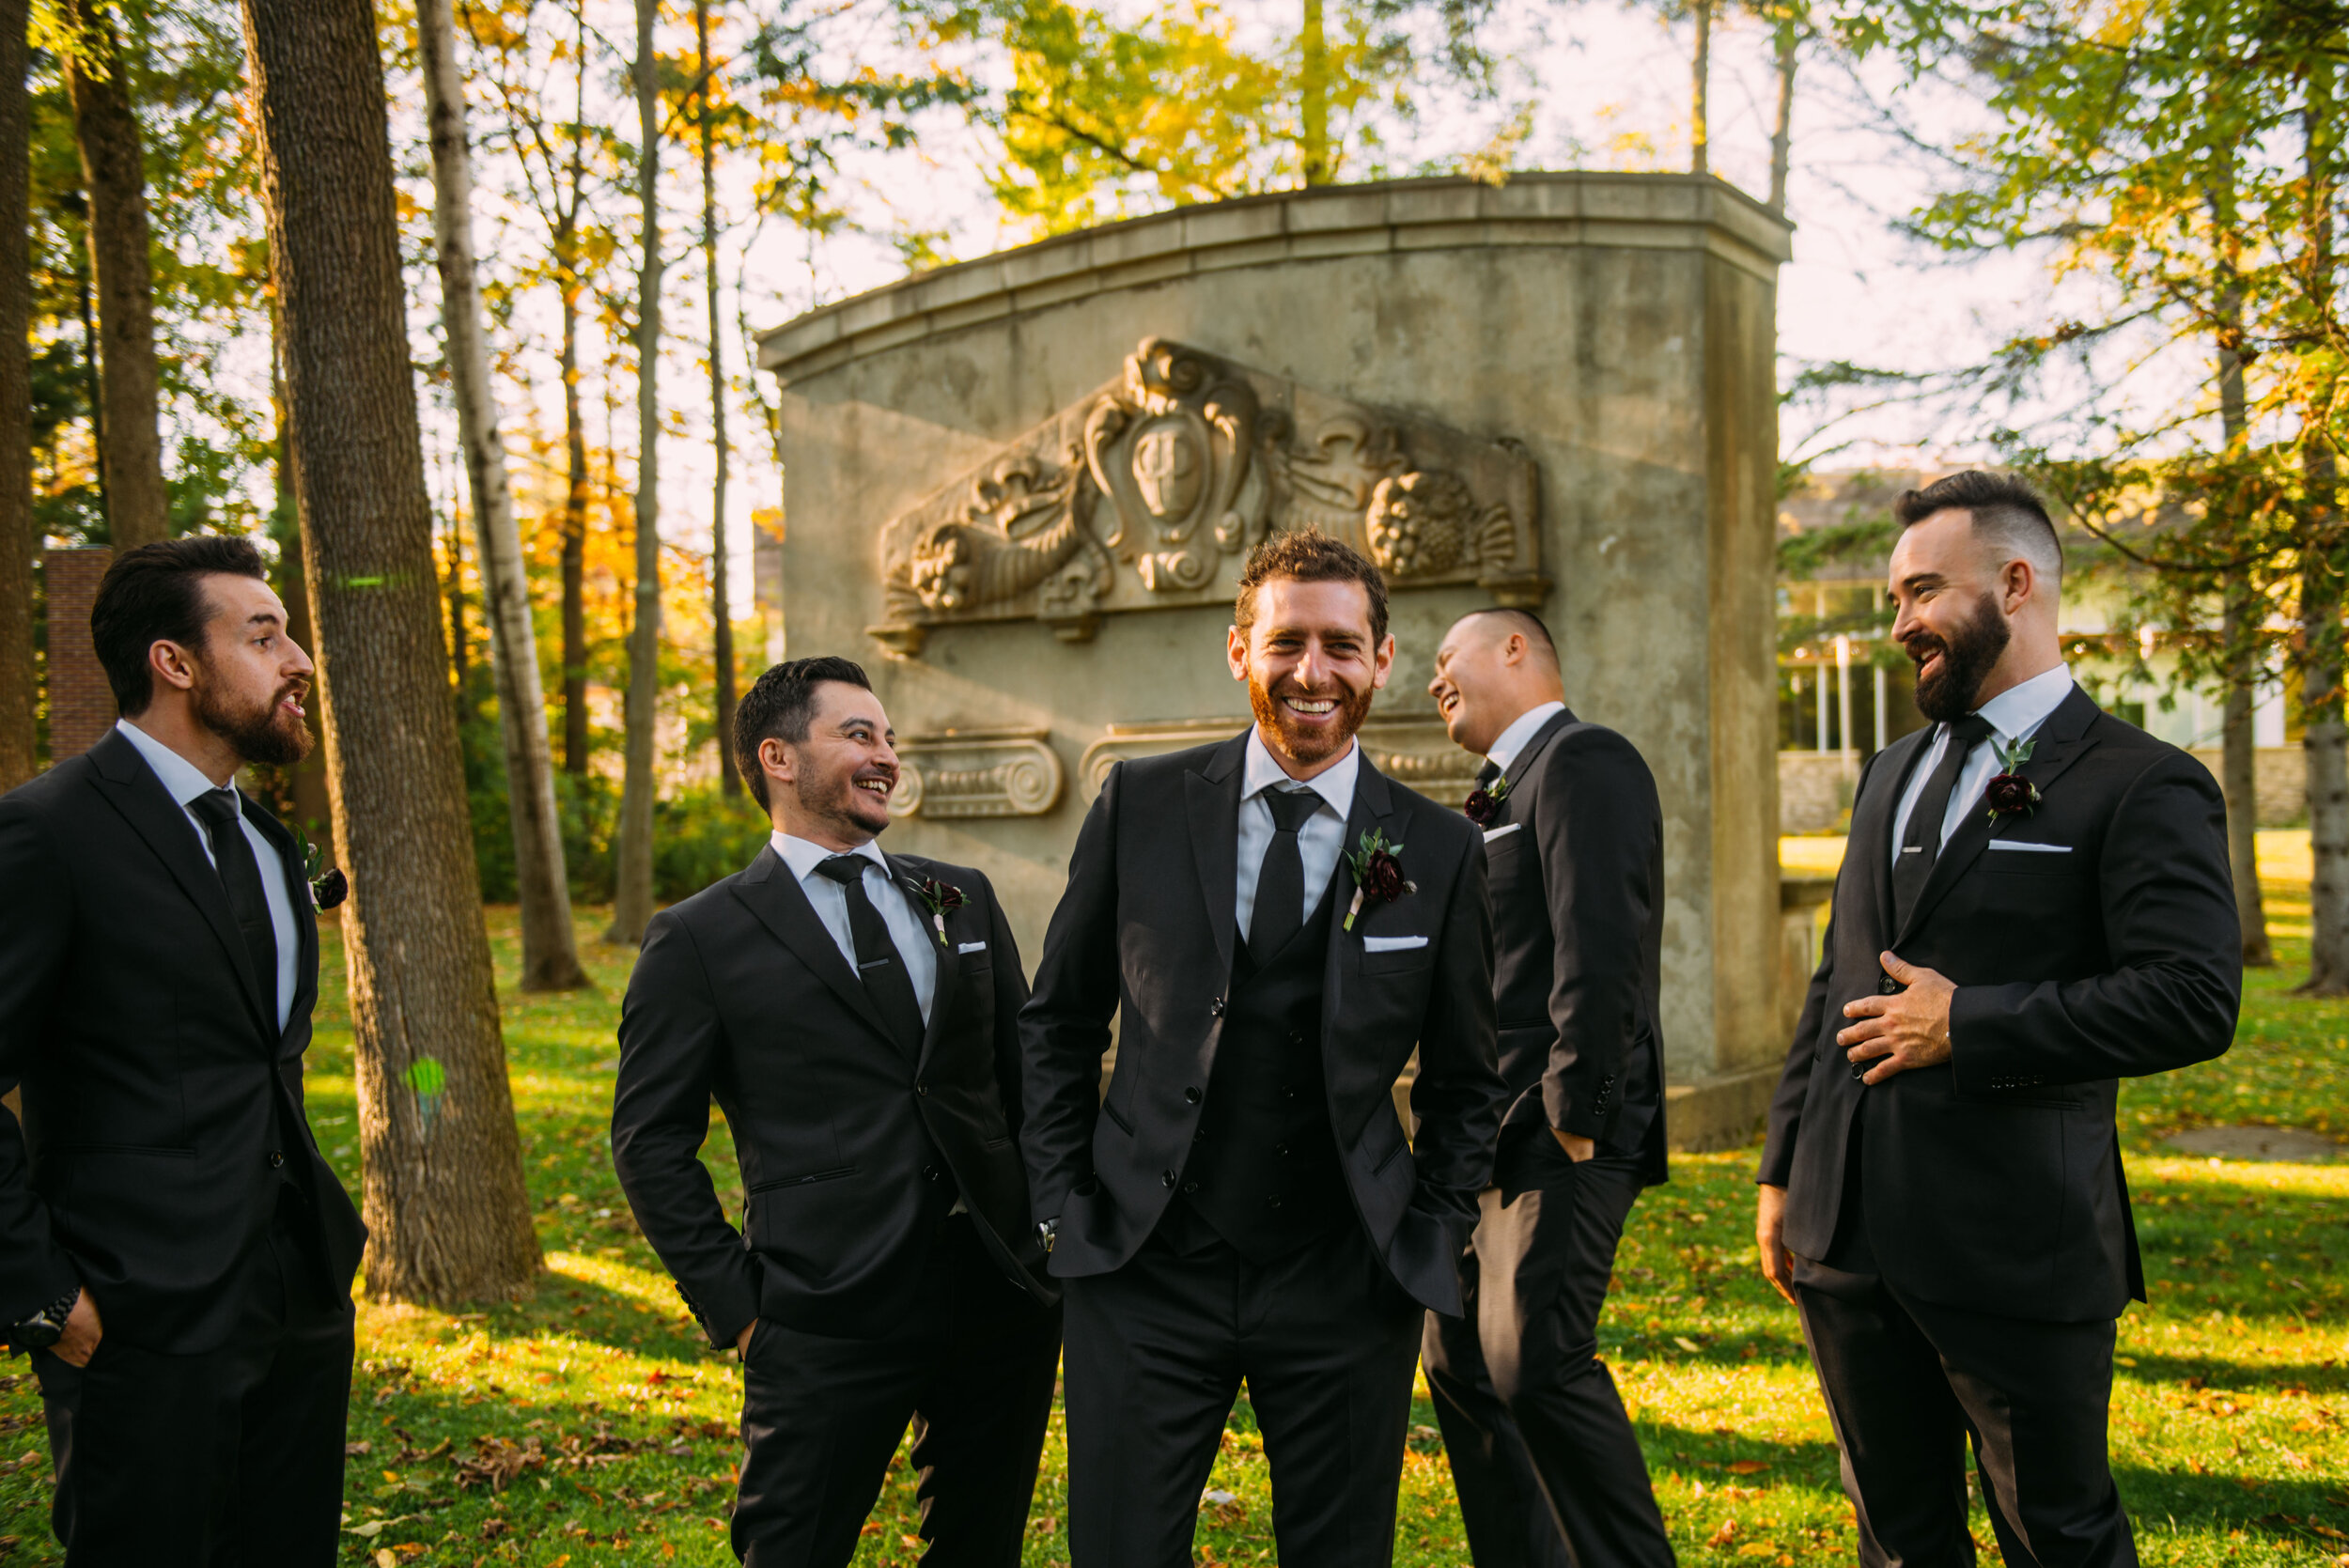 Guild Inn Estate wedding photography with soundslikeyellowphotography